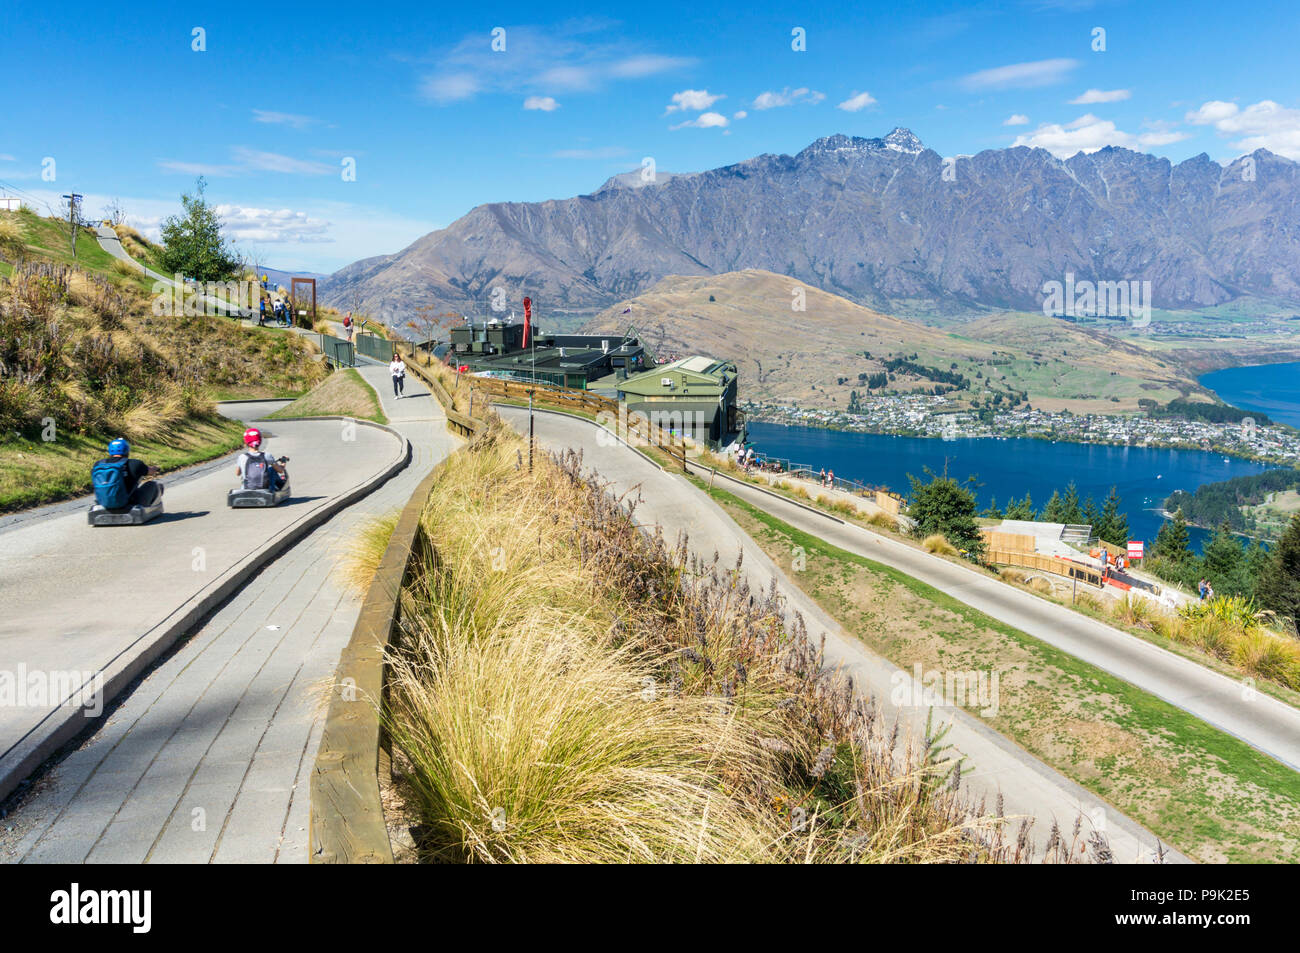 Luge Track Stock Photos Images Alamy Ampamp Skyline Singapore 2x Queenstown New Zealand Thrill Ride South Island